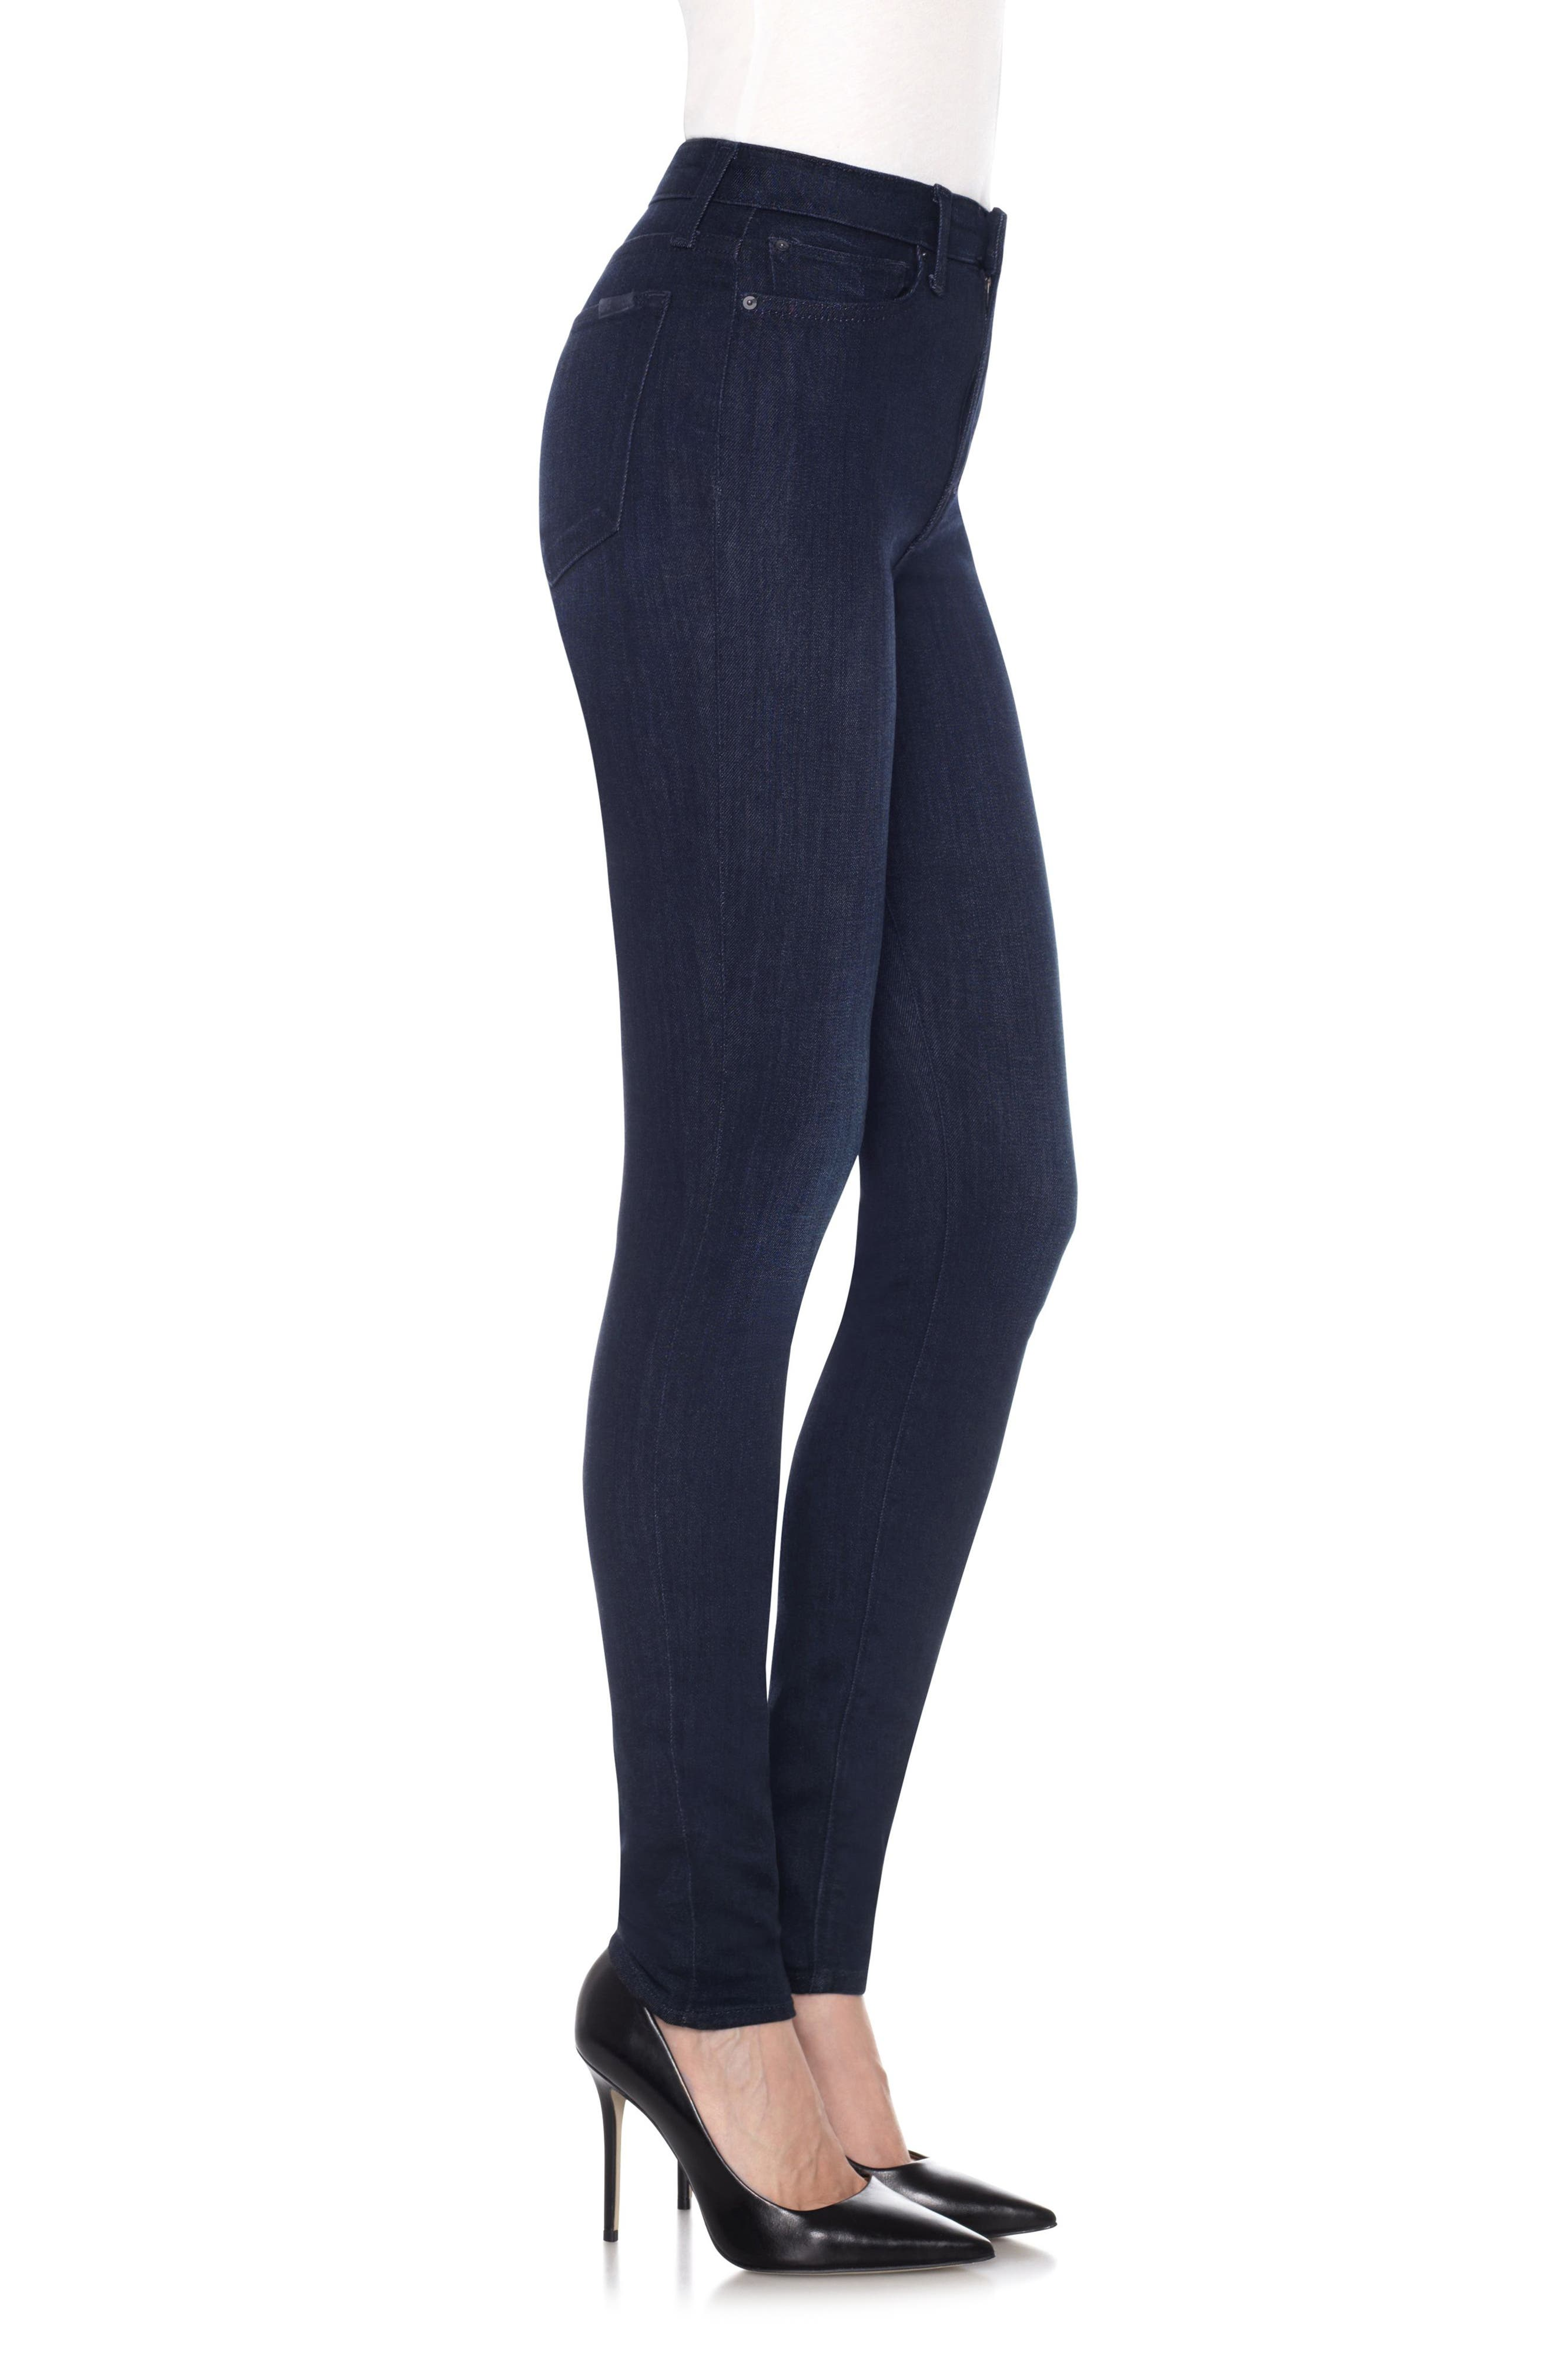 Charlie High Waist Skinny Jeans,                             Alternate thumbnail 3, color,                             400